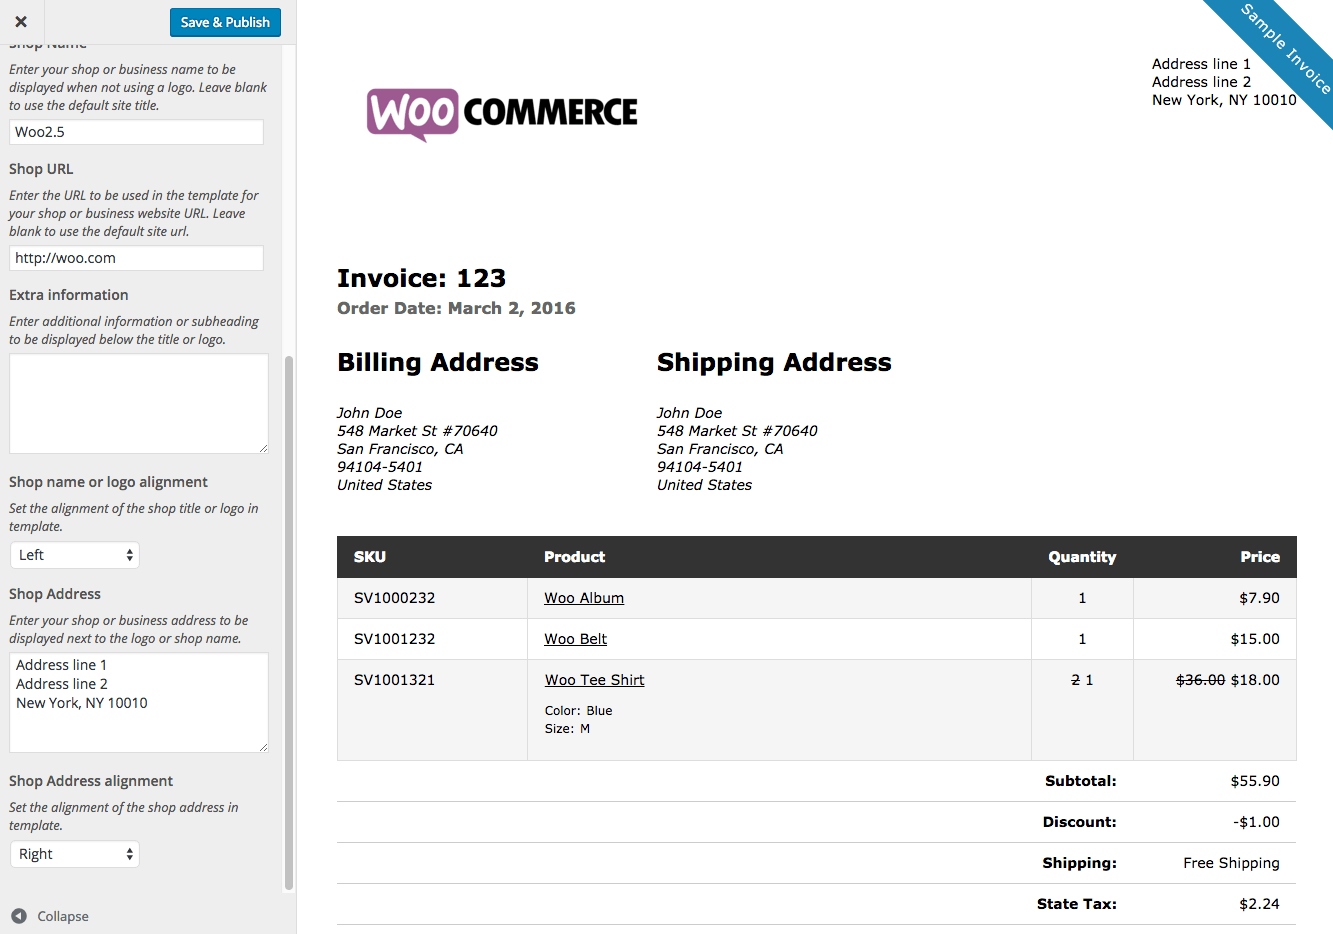 Thassosus  Gorgeous Print Invoices Amp Packing Lists  Woocommerce With Remarkable Woocommerce Print Invoices  Packing Lists Customizer With Awesome Design Invoice Template Free Also Dummy Invoice Template In Addition Dealer Invoice Prices For New Cars And Invoice Pricing Cars As Well As Work Invoice Template Free Additionally Consulting Services Invoice Template From Woocommercecom With Thassosus  Remarkable Print Invoices Amp Packing Lists  Woocommerce With Awesome Woocommerce Print Invoices  Packing Lists Customizer And Gorgeous Design Invoice Template Free Also Dummy Invoice Template In Addition Dealer Invoice Prices For New Cars From Woocommercecom